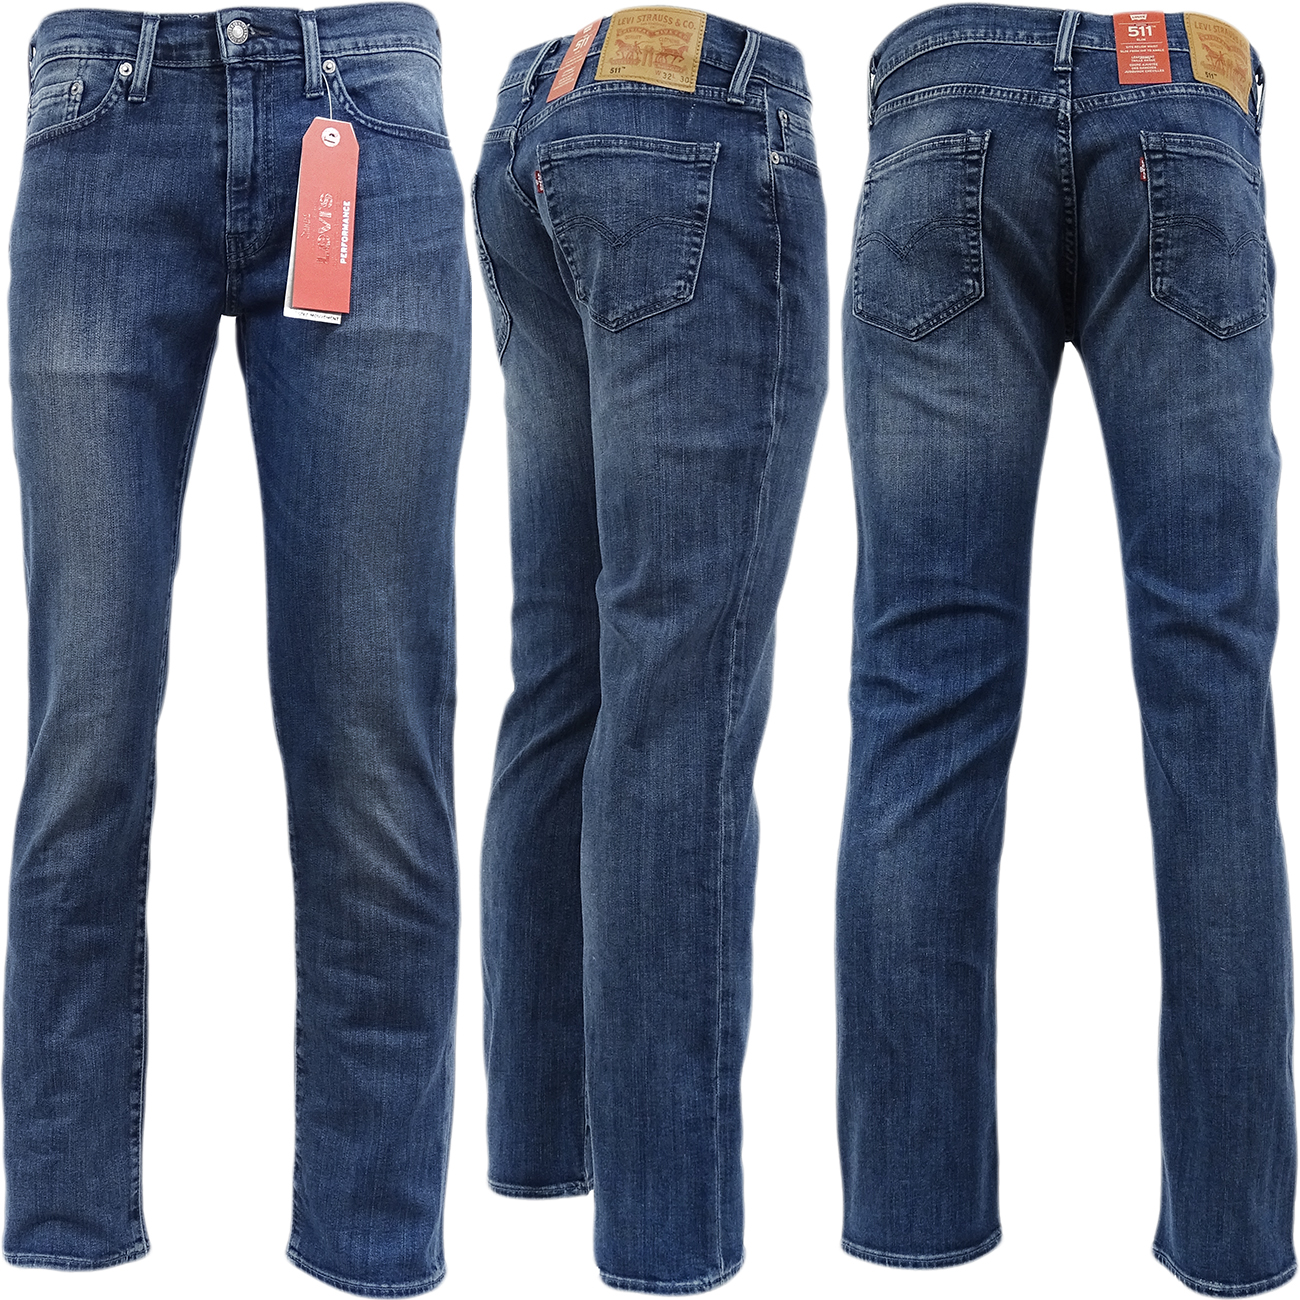 'amor' Pant Jean 511 Denim Slim Mens Levis Ebay Fit XOwZZS